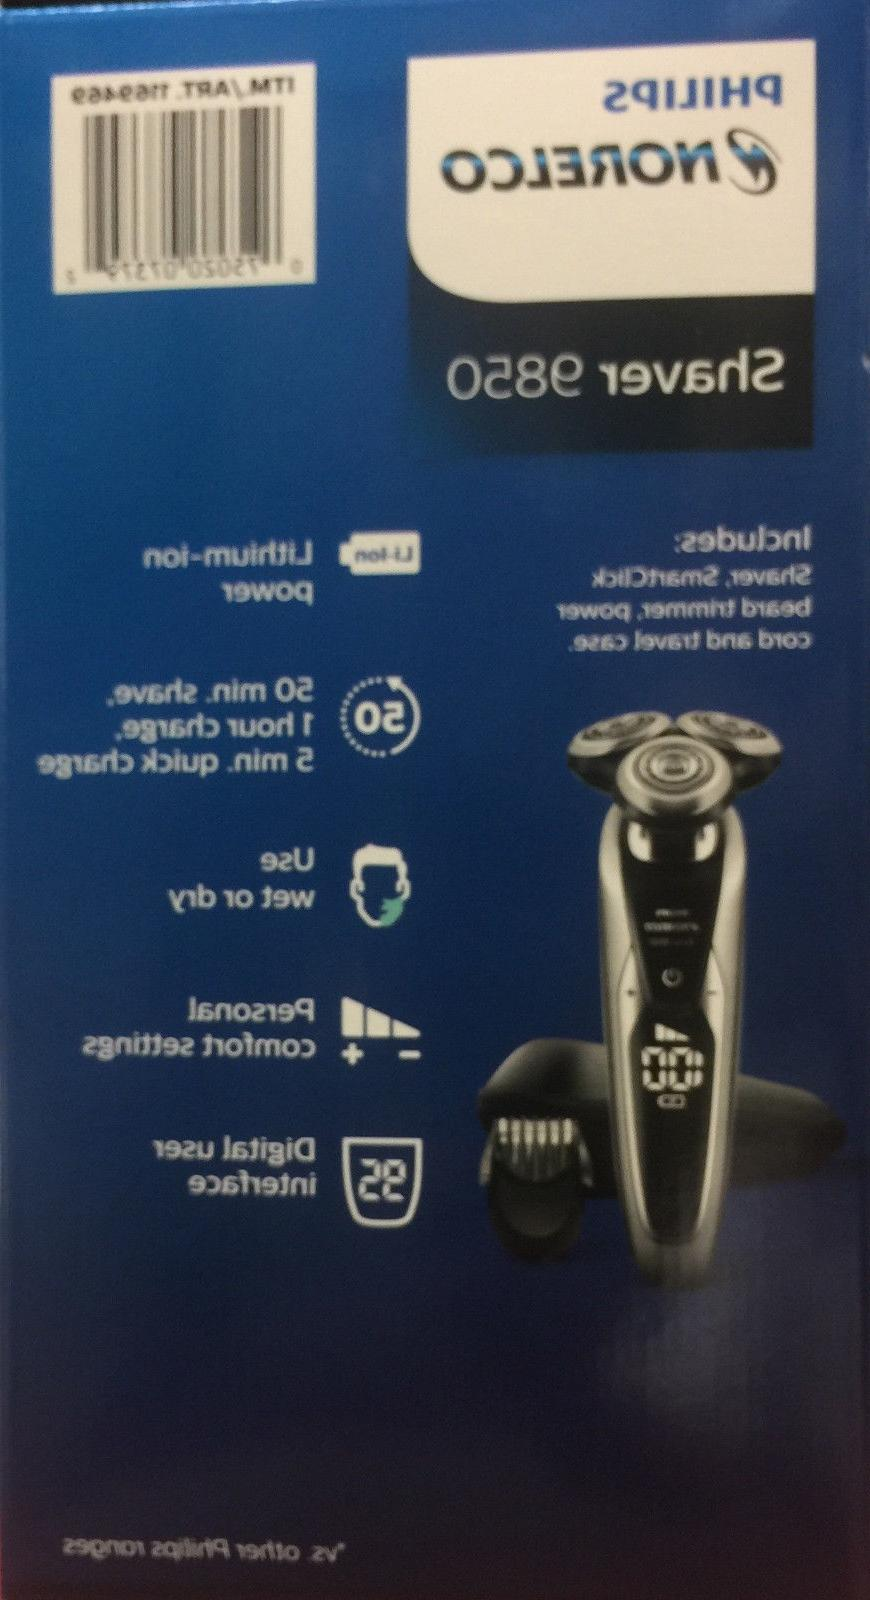 Philips Norelco 9000 Series Shaver Stubble Trimmer